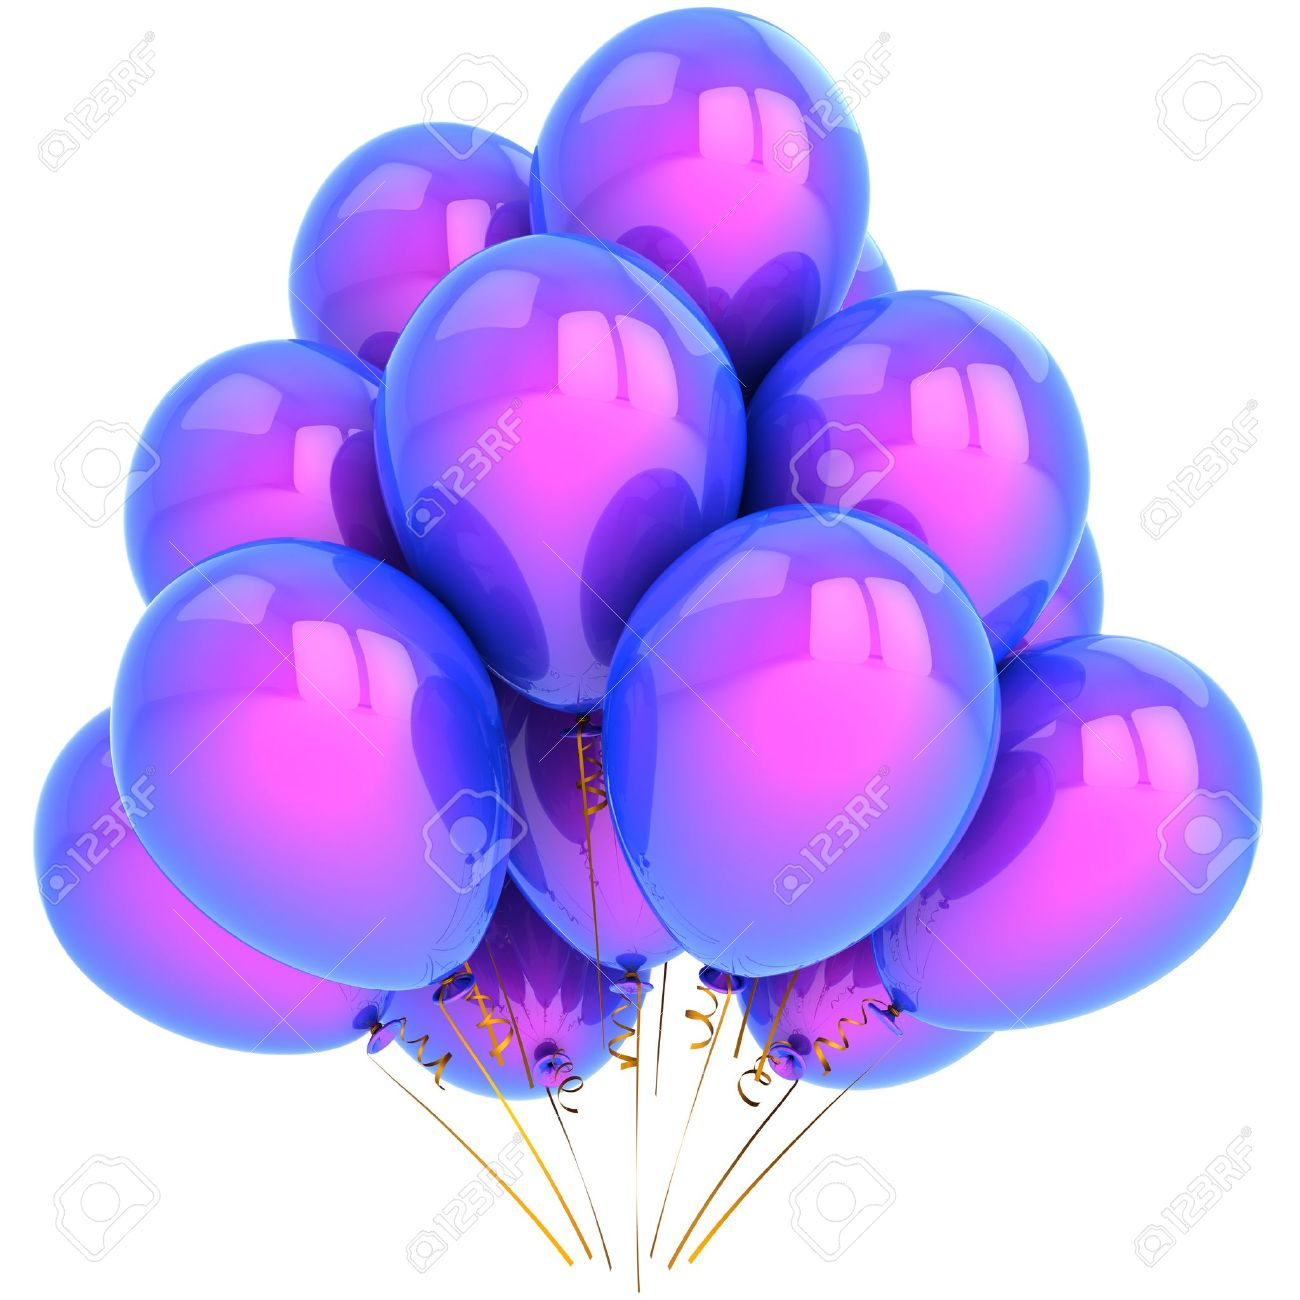 Helium Balloons Colored Blue And Purple Elegance Birthday Party